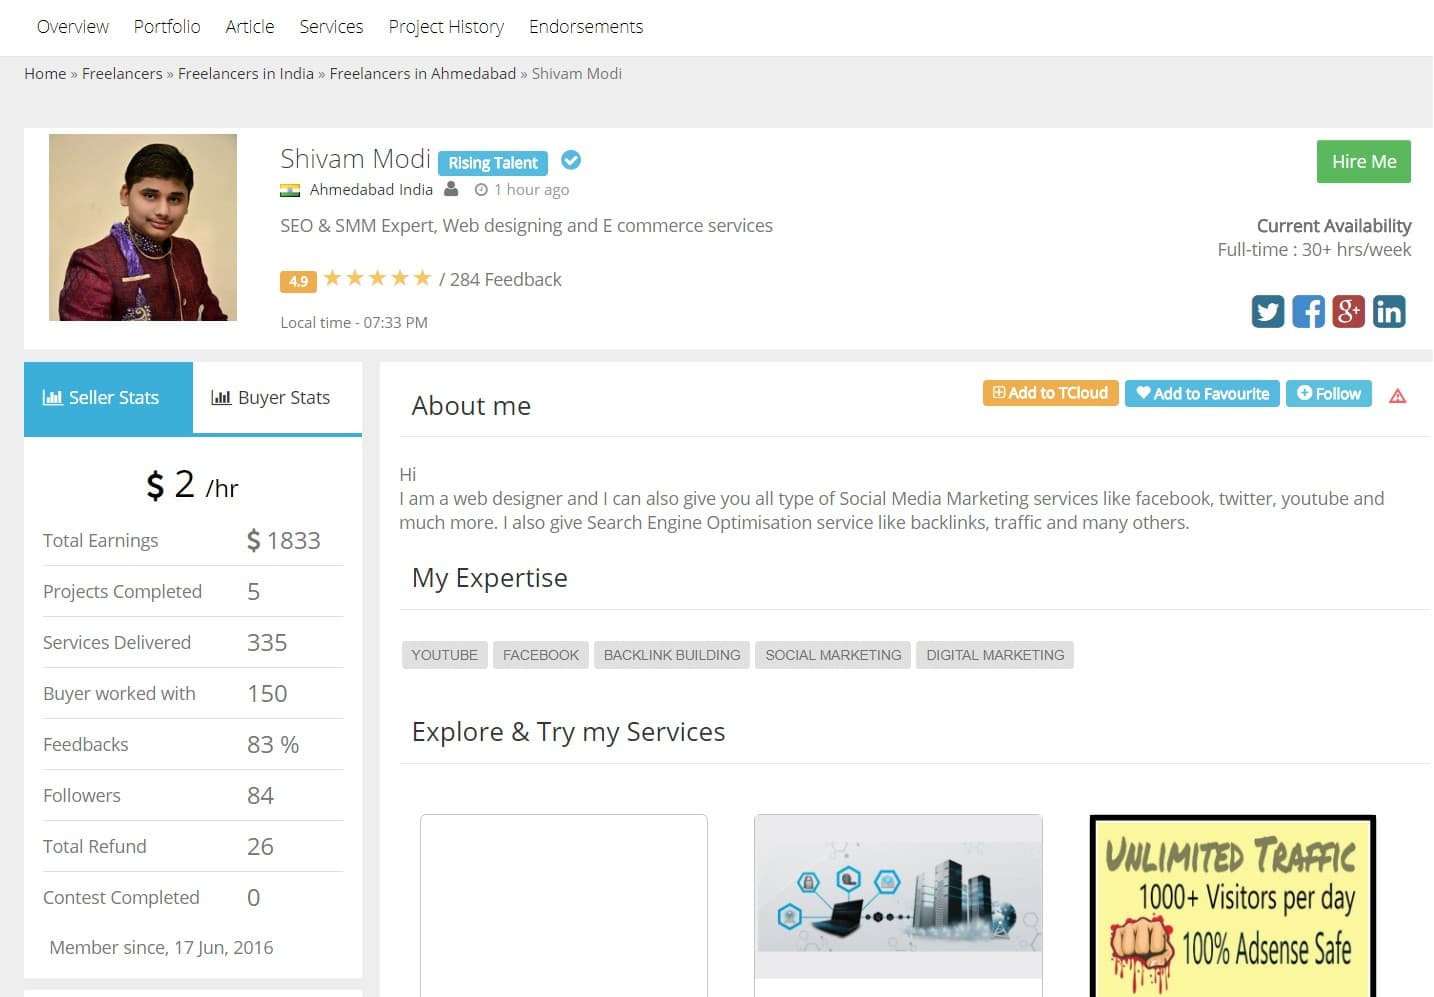 A sample of a freelancer's profile in Truelancer